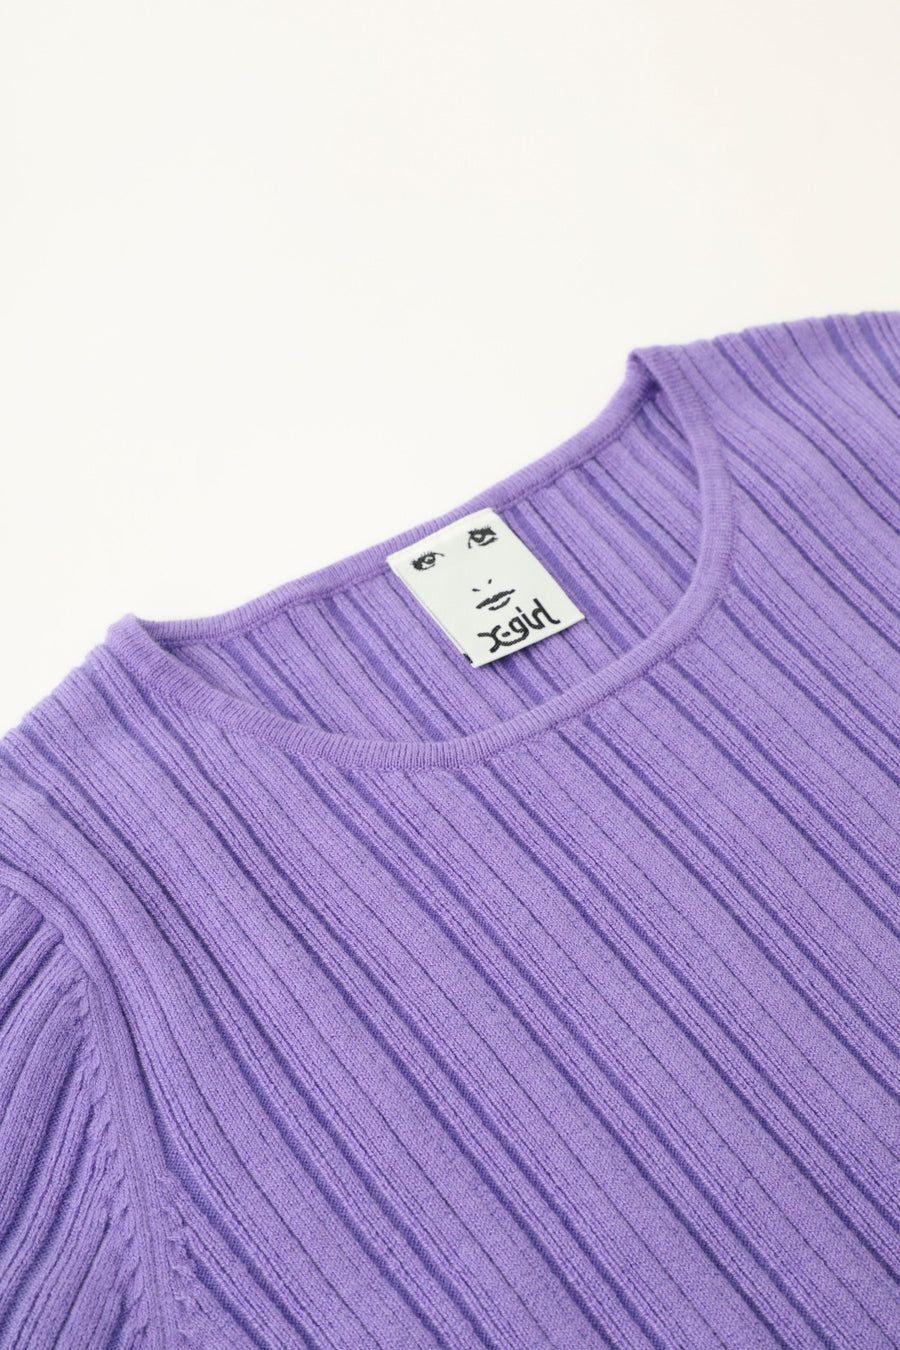 CREWNECK KNIT TOP - X-Girl